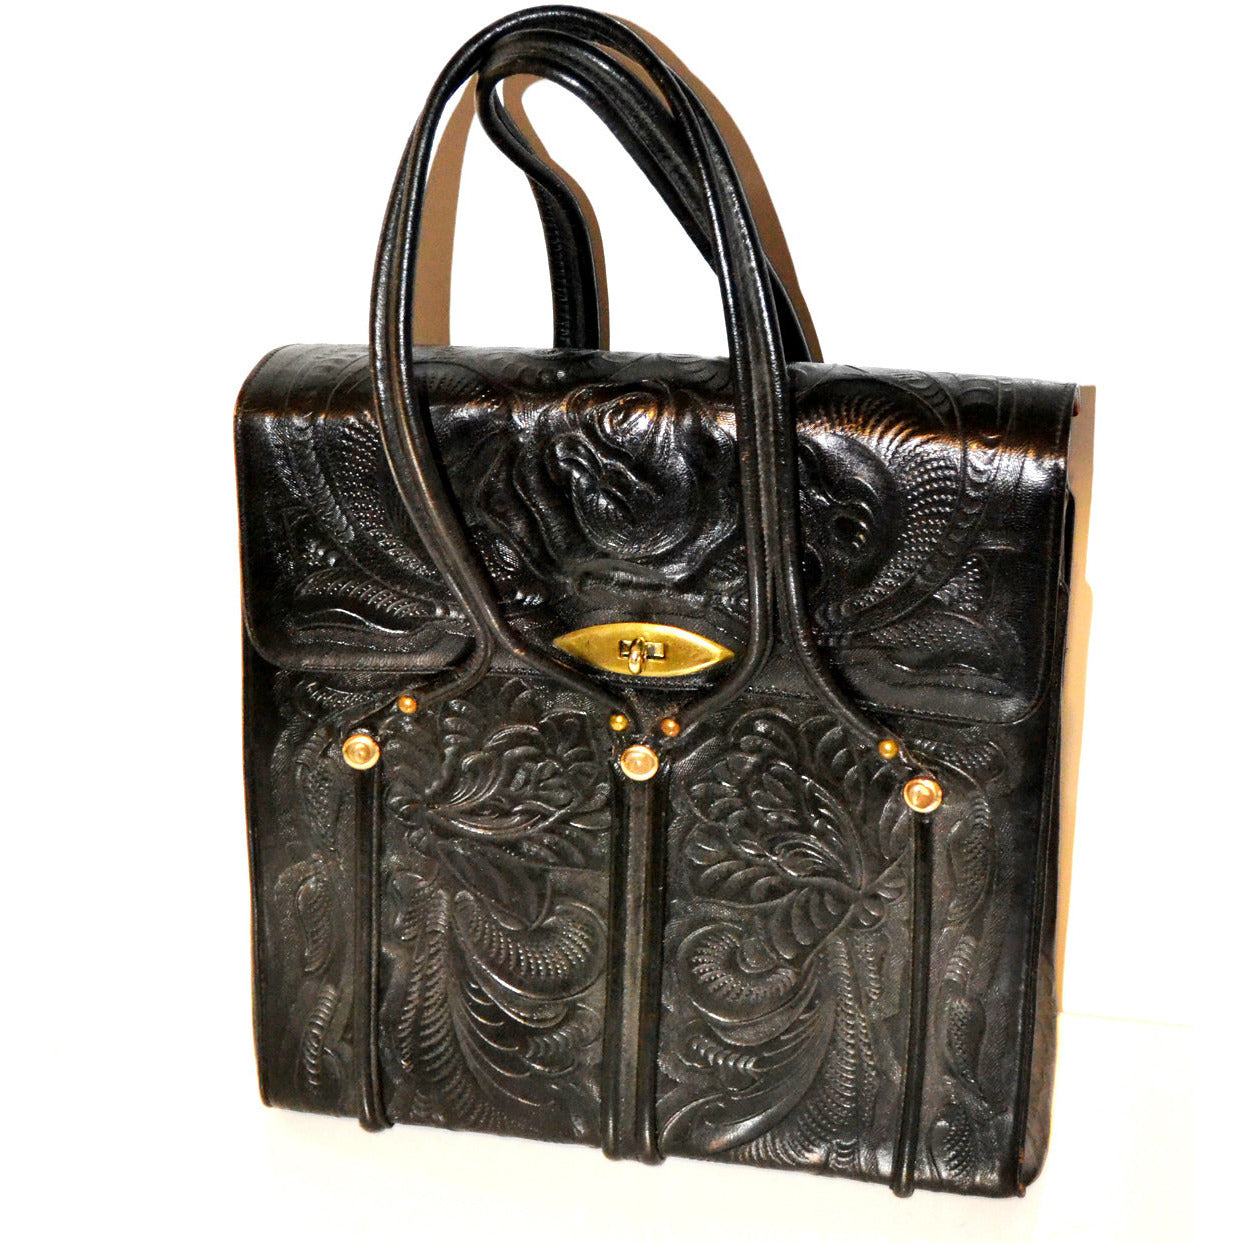 Vintage Black Aztela Tooled Leather Travel Bag